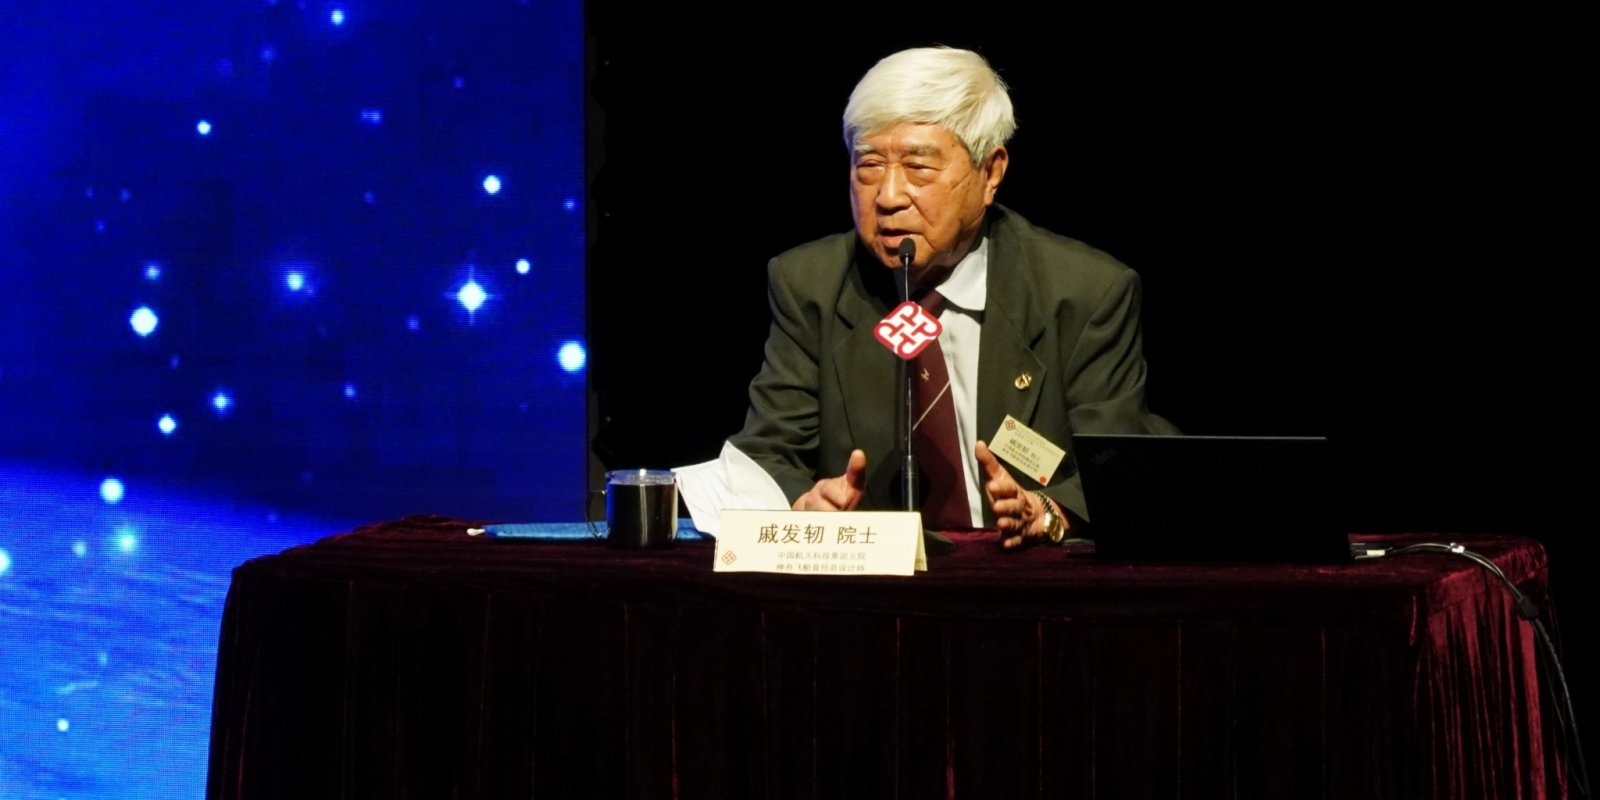 Scientists hail HK's role in space missions